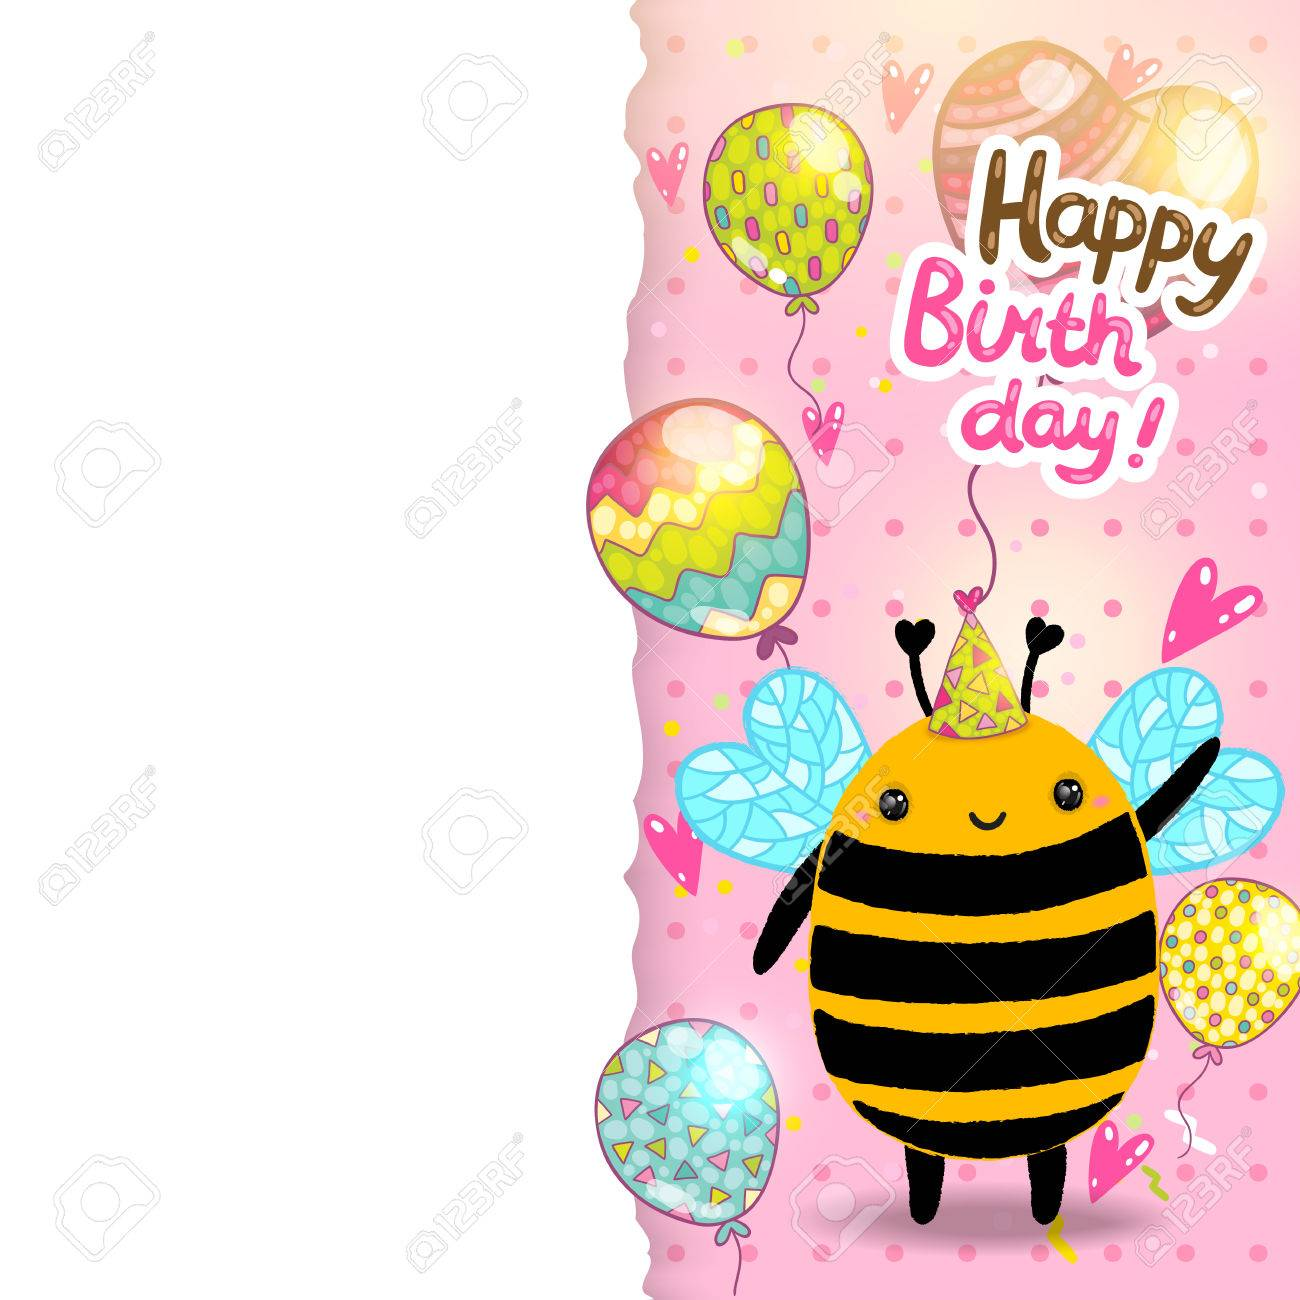 happy birthday card background a bee vector holiday party happy birthday card background a bee vector holiday party template stock vector 29315661